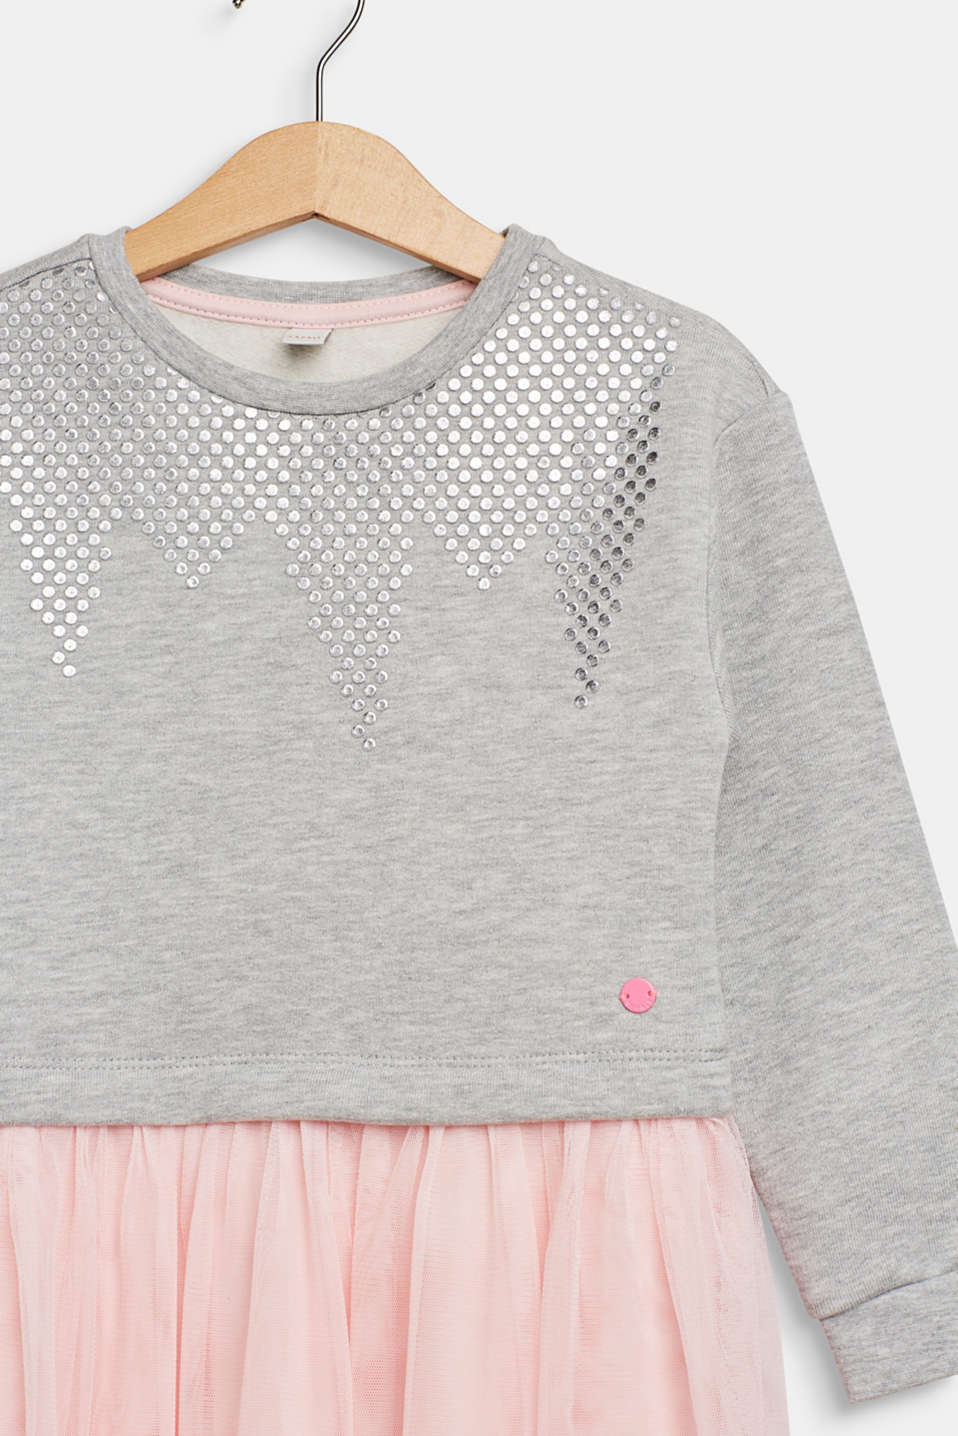 Sweatshirt dress with tulle skirt, HEATHER SILVER, detail image number 2